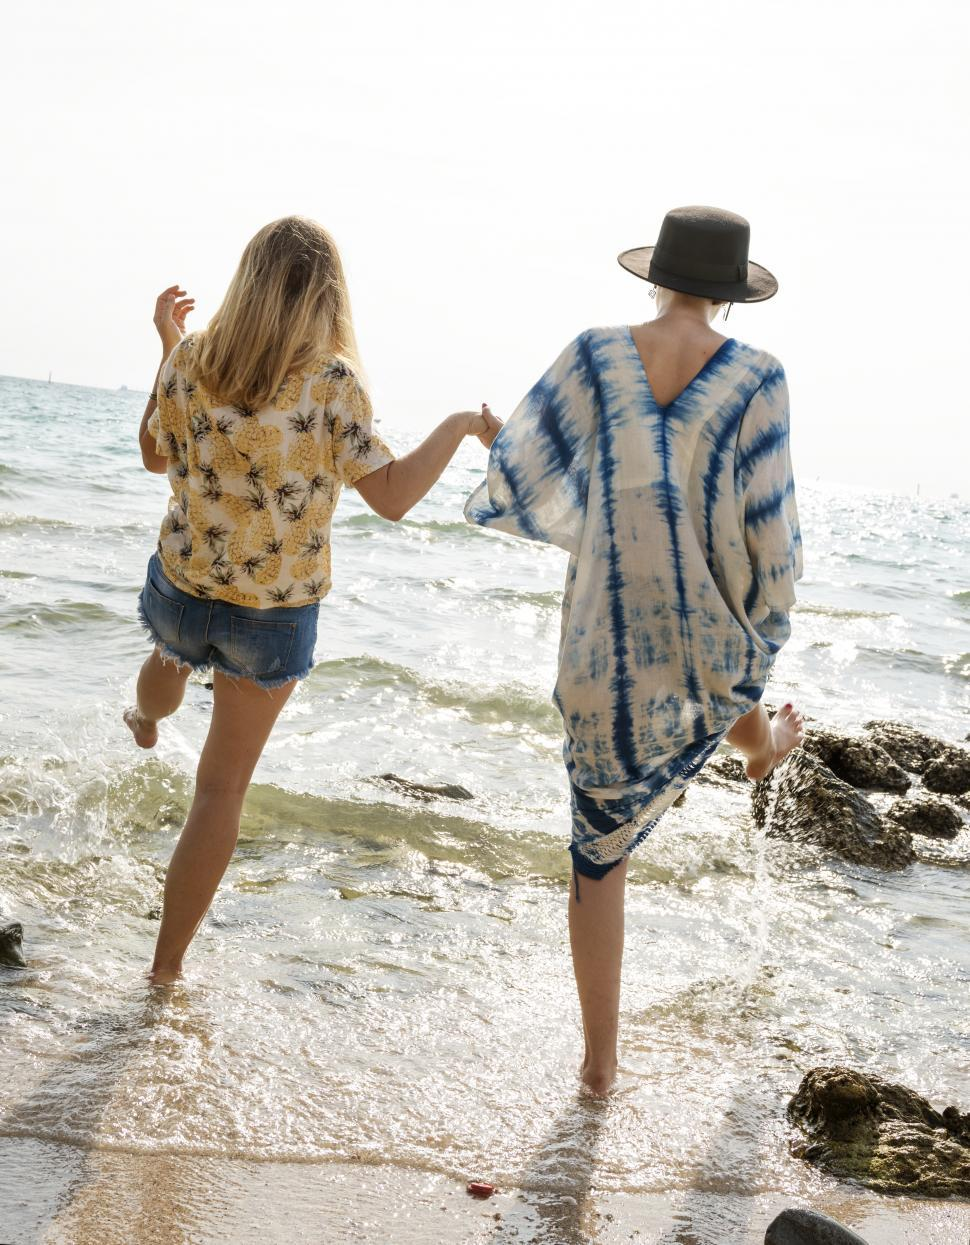 Download Free Stock HD Photo of Rear view of two women splashing seawater with their legs Online